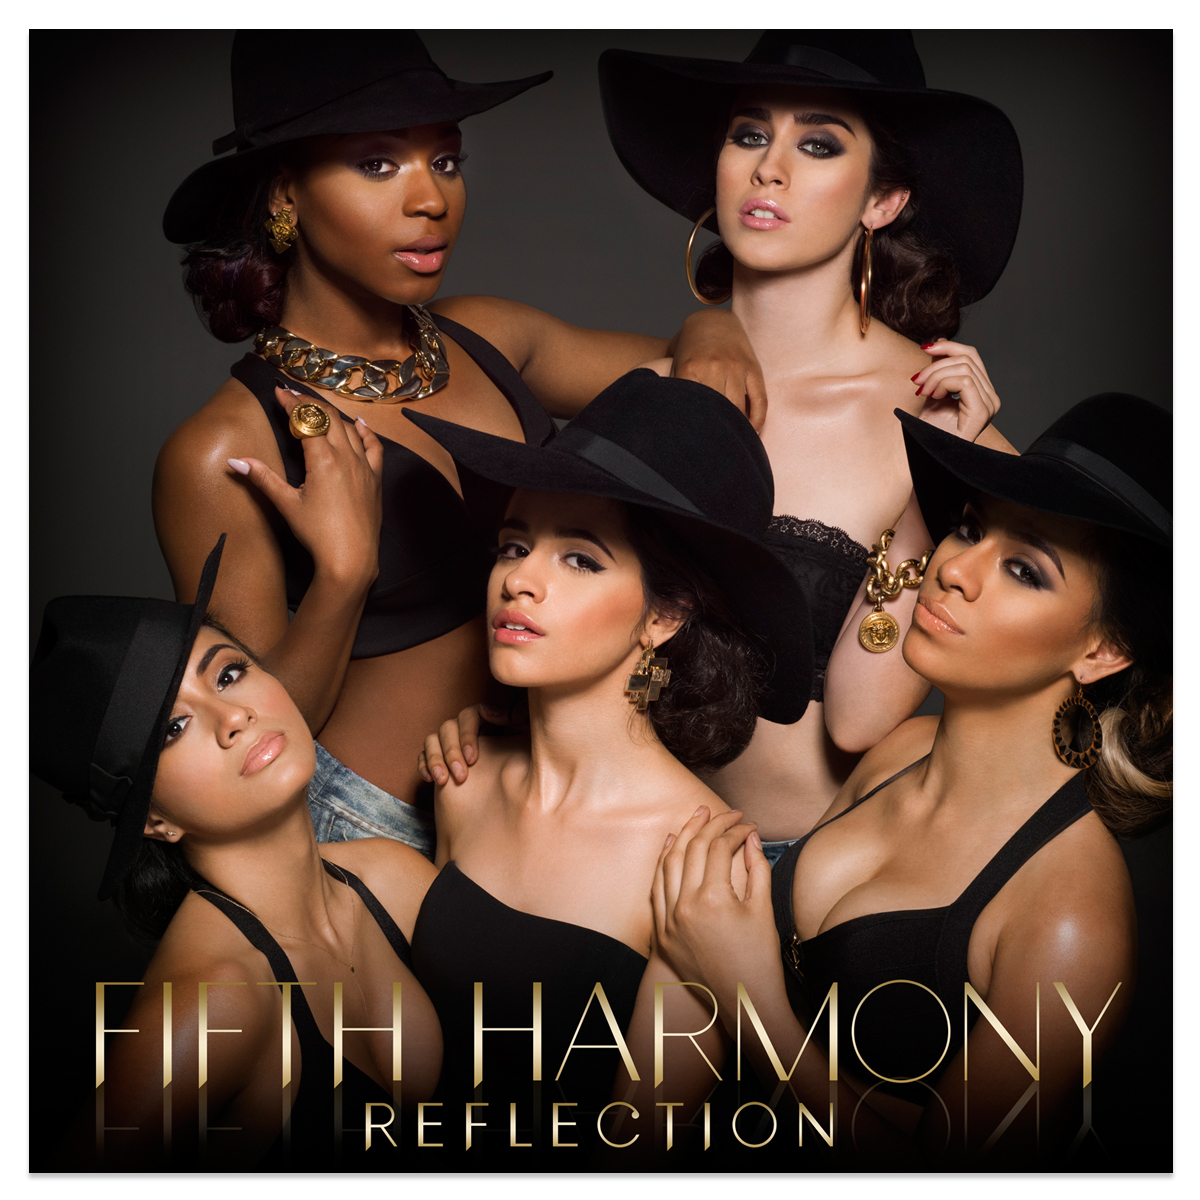 Fifth Harmony - Reflection Deluxe CD